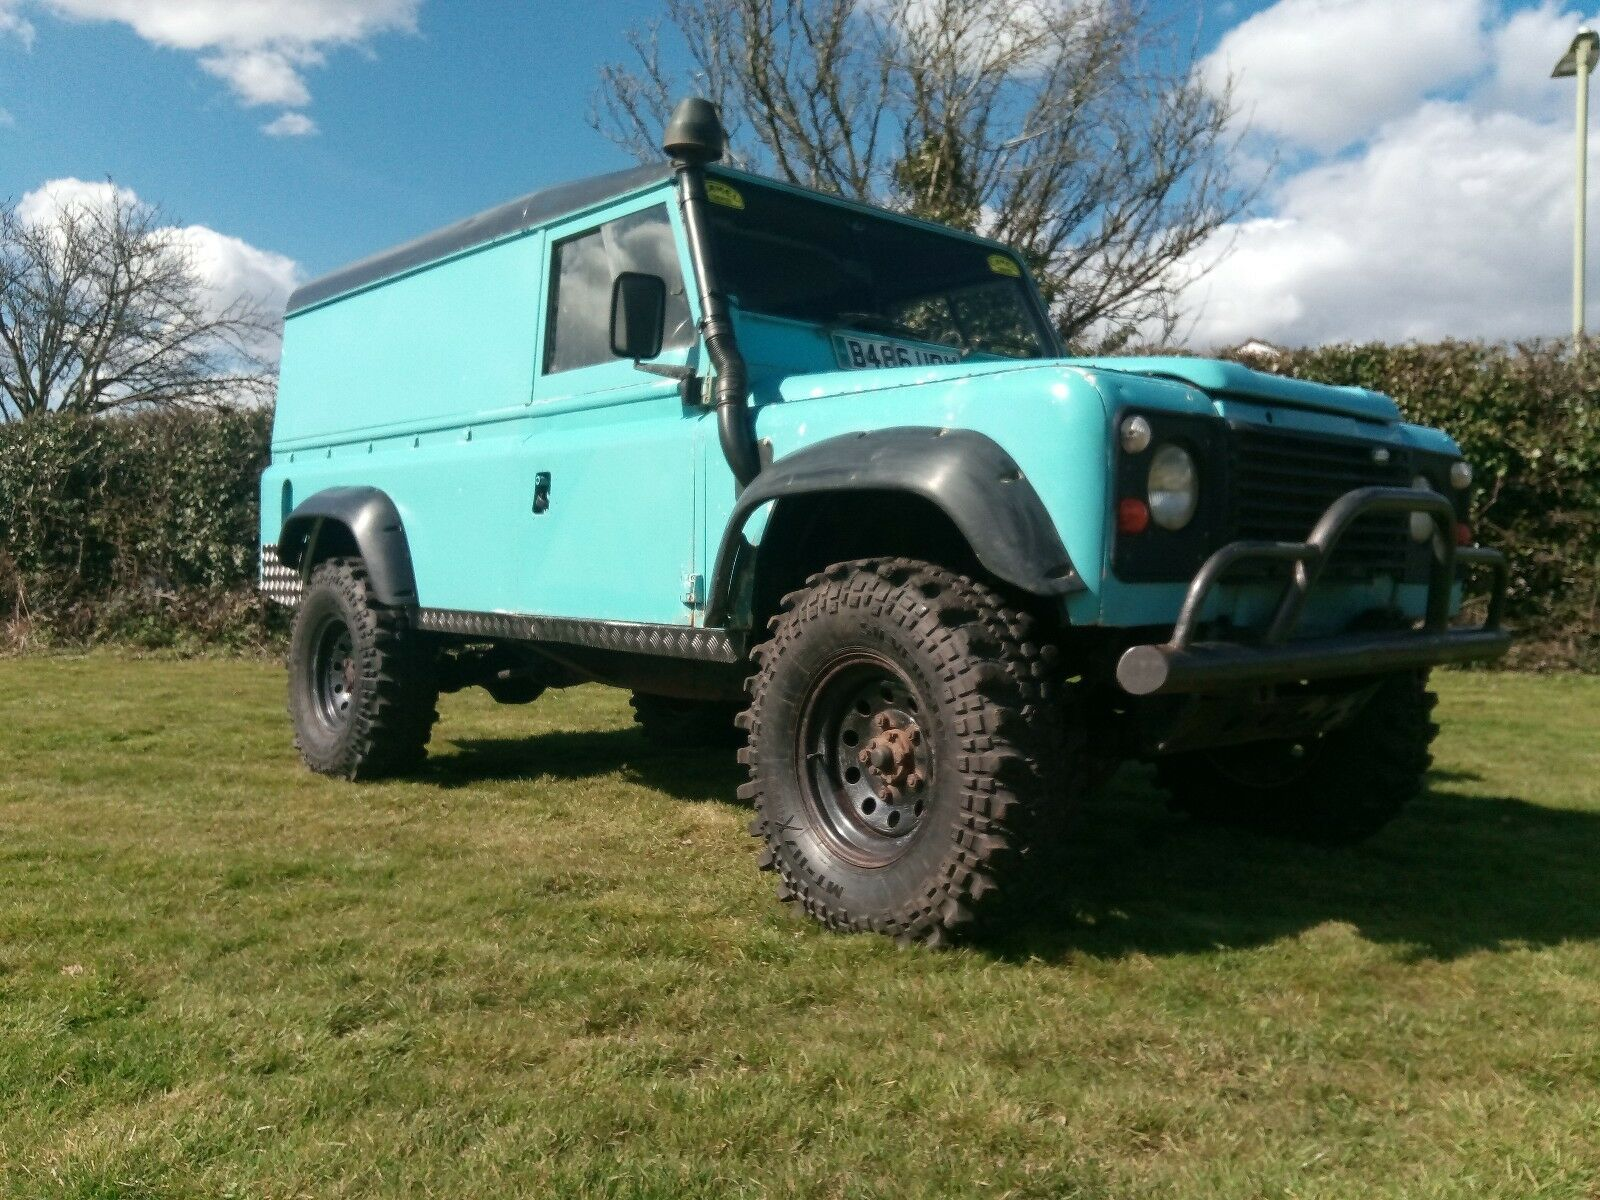 Land Rover Defender 110 Off Road Monster Truck 4x4 Project